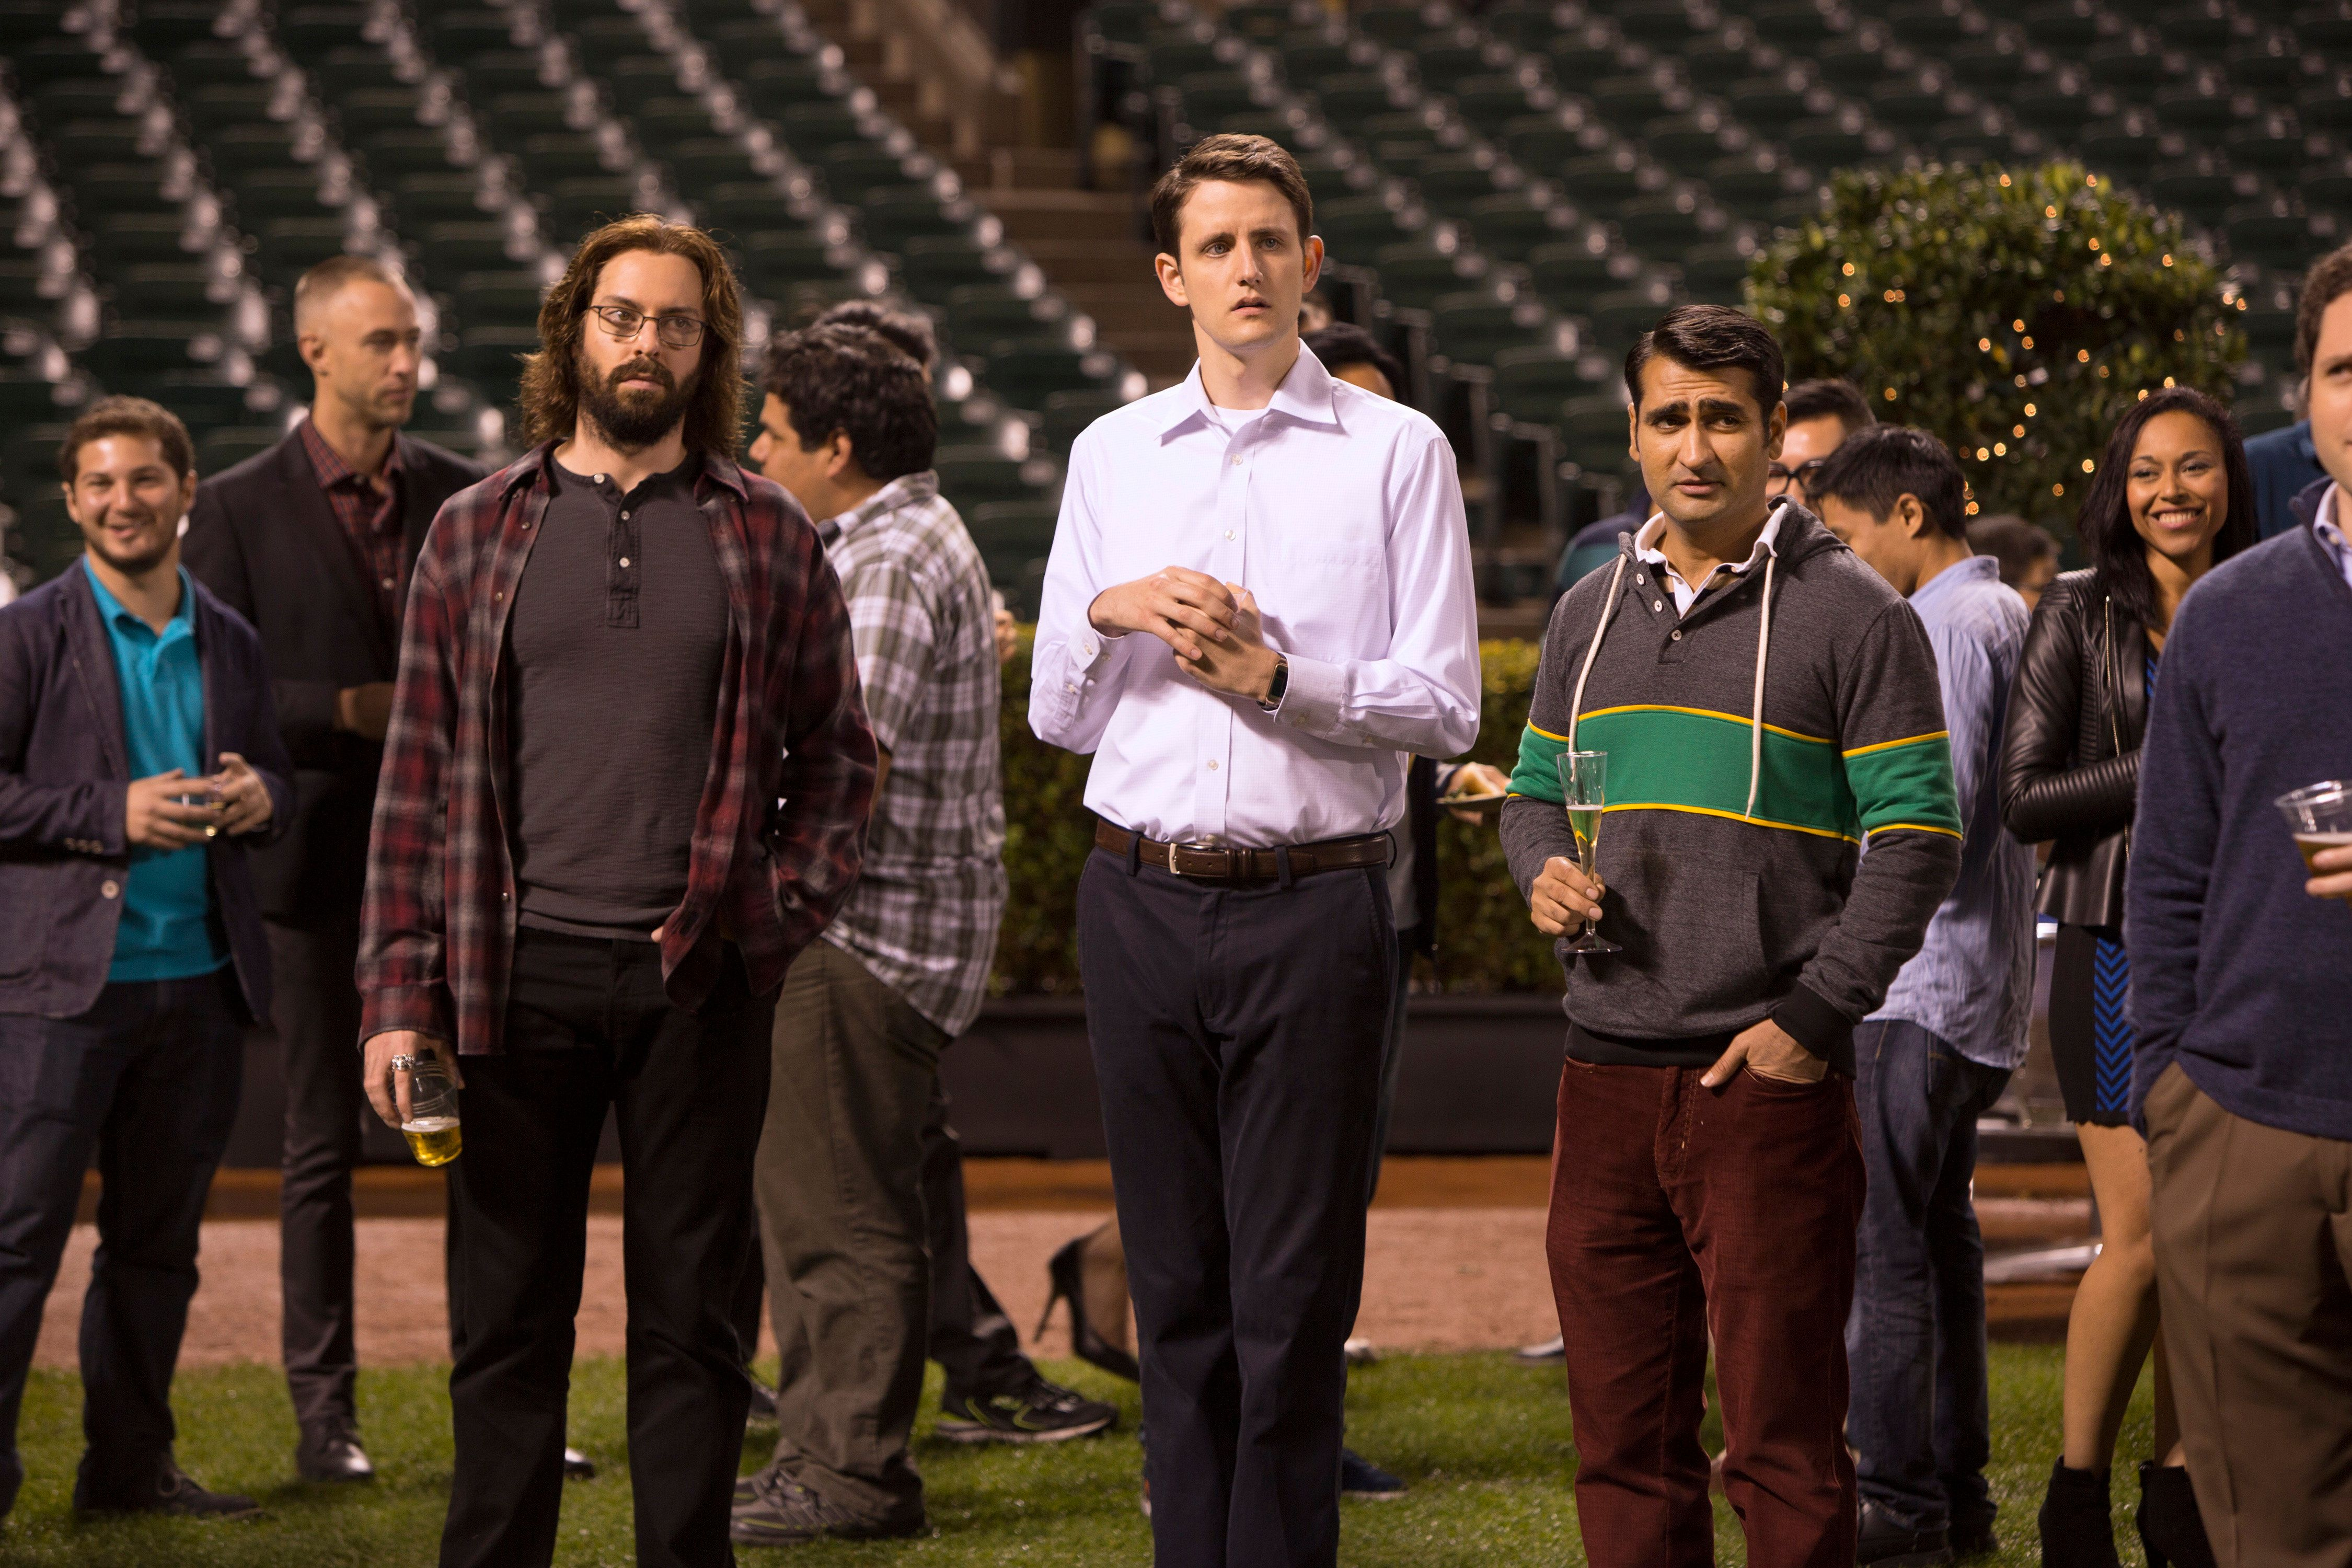 """Martin Starr, Zach Woods and Kumail Nanjiani in Season 2 of """"Silicon Valley."""""""